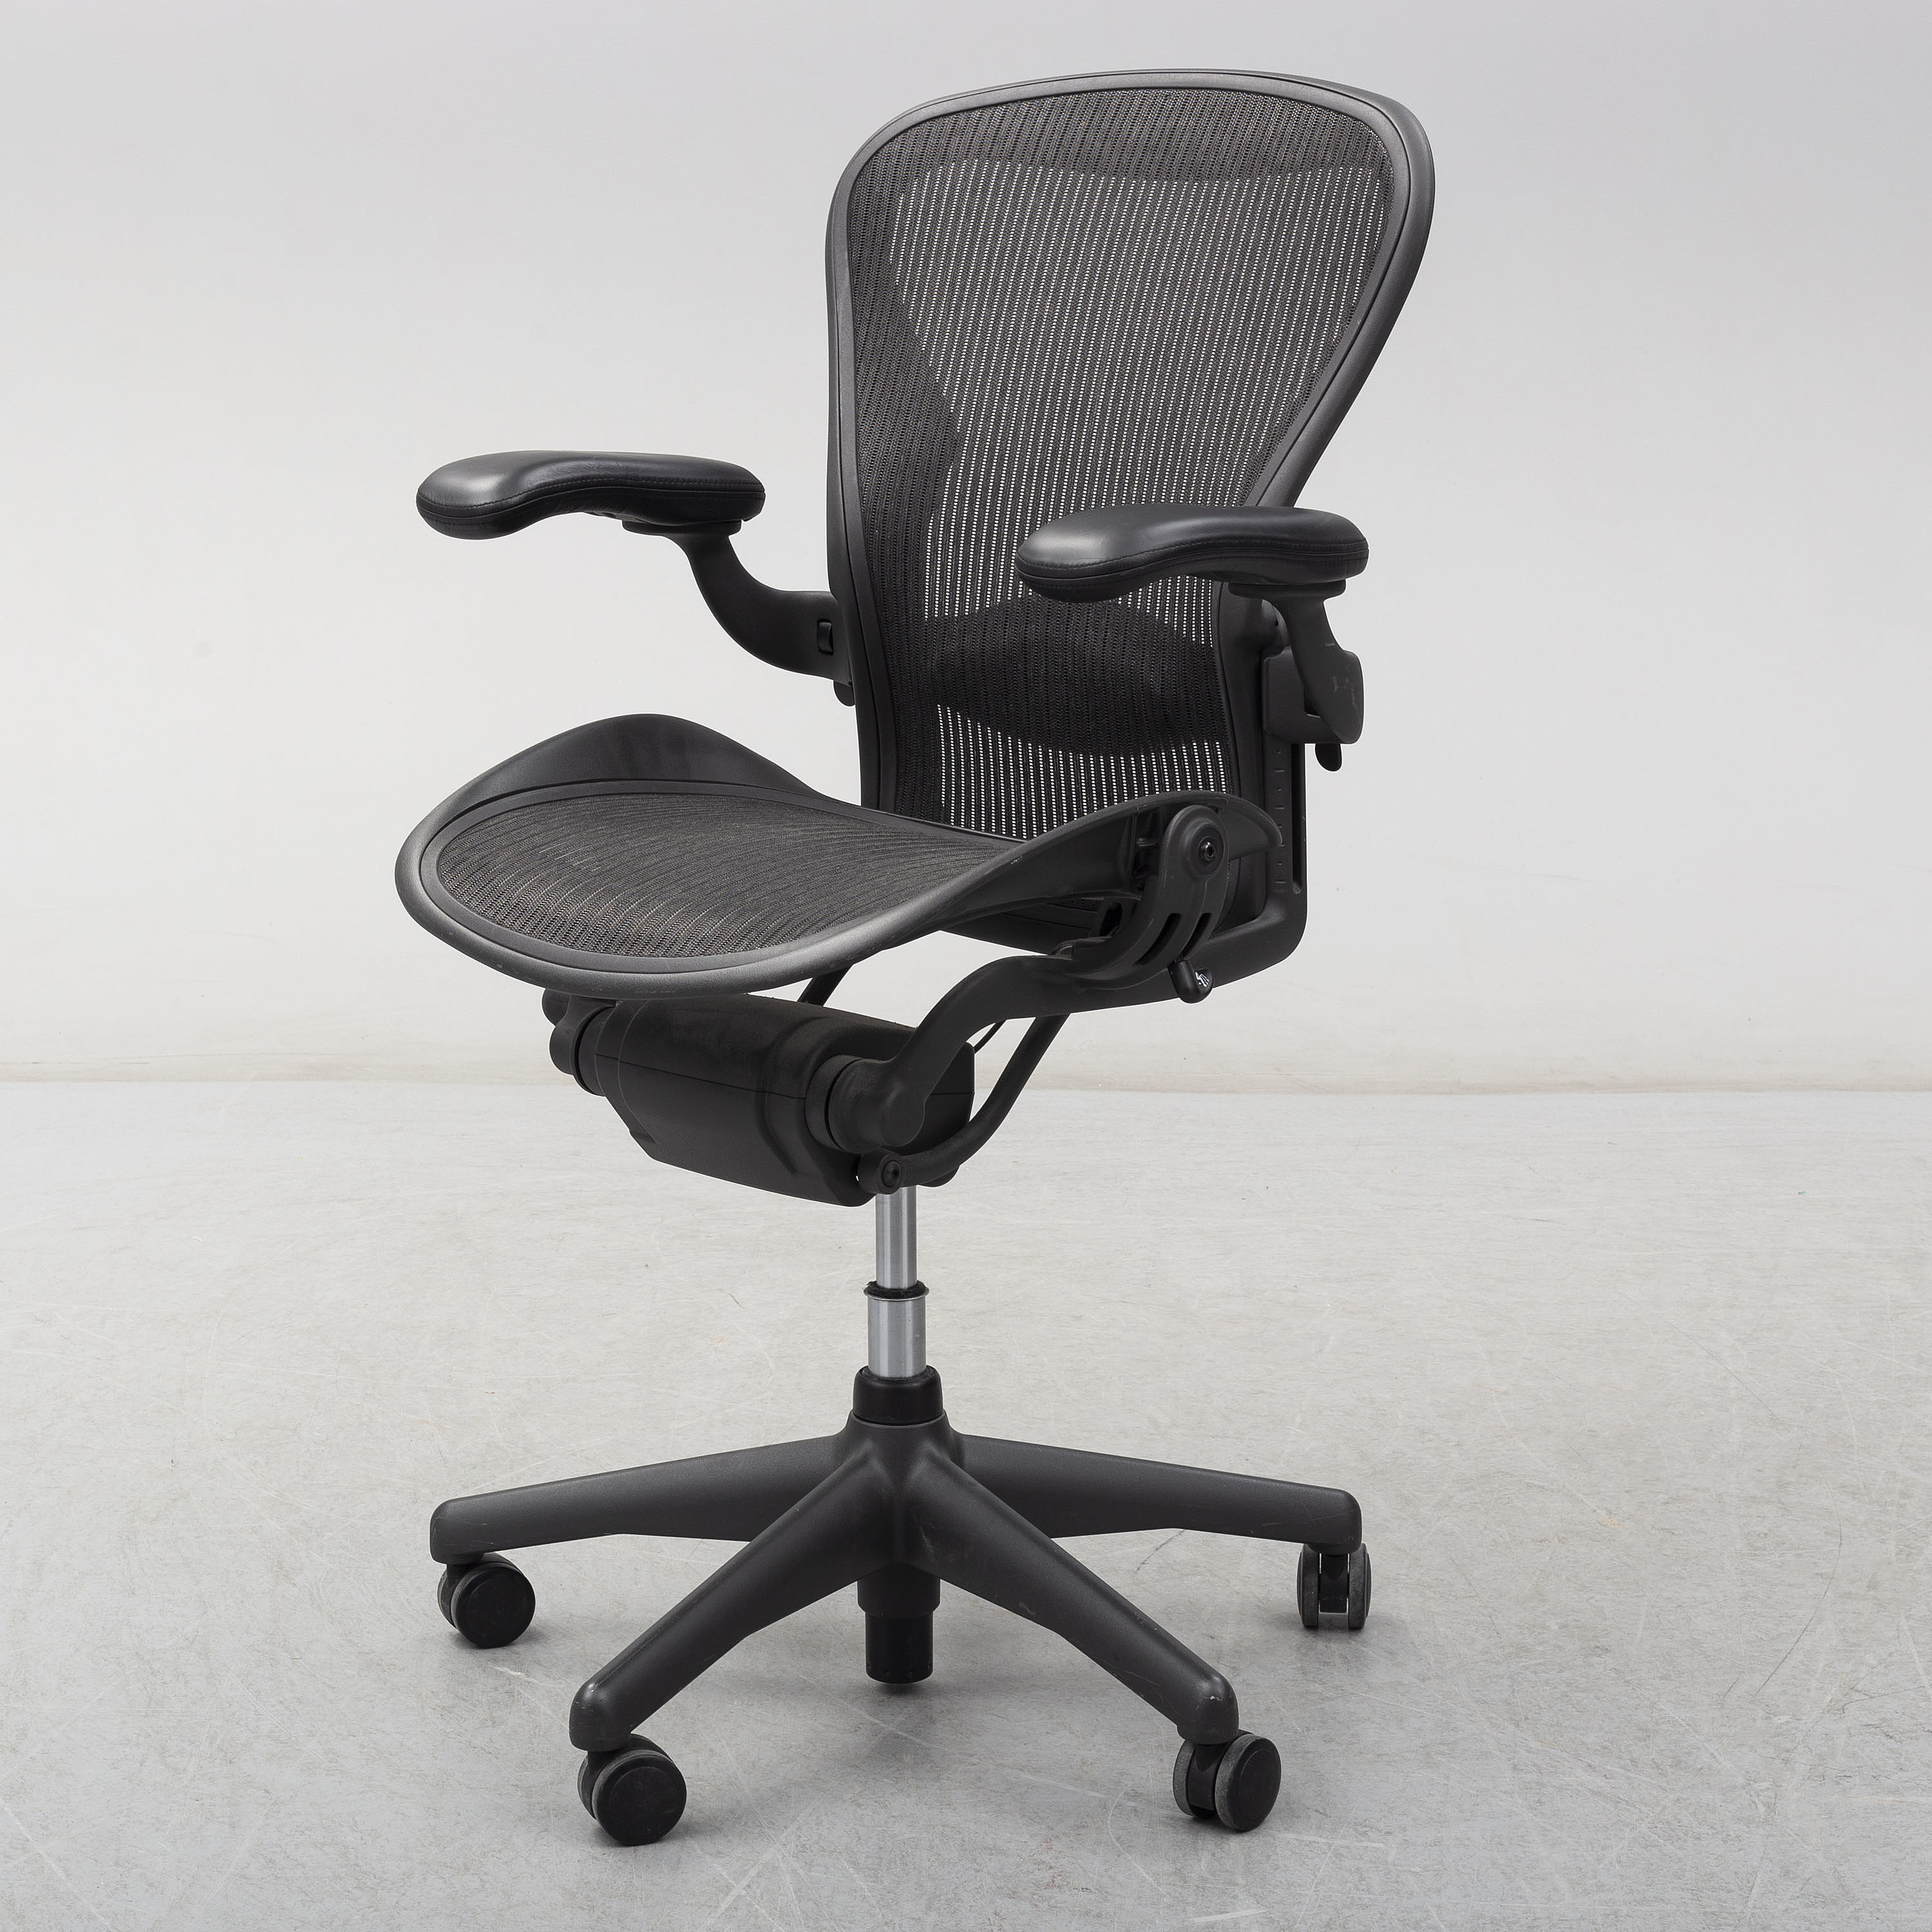 Strange An Aeron Swivel Armchair By Don Chadwich Bill Stumpf Gmtry Best Dining Table And Chair Ideas Images Gmtryco